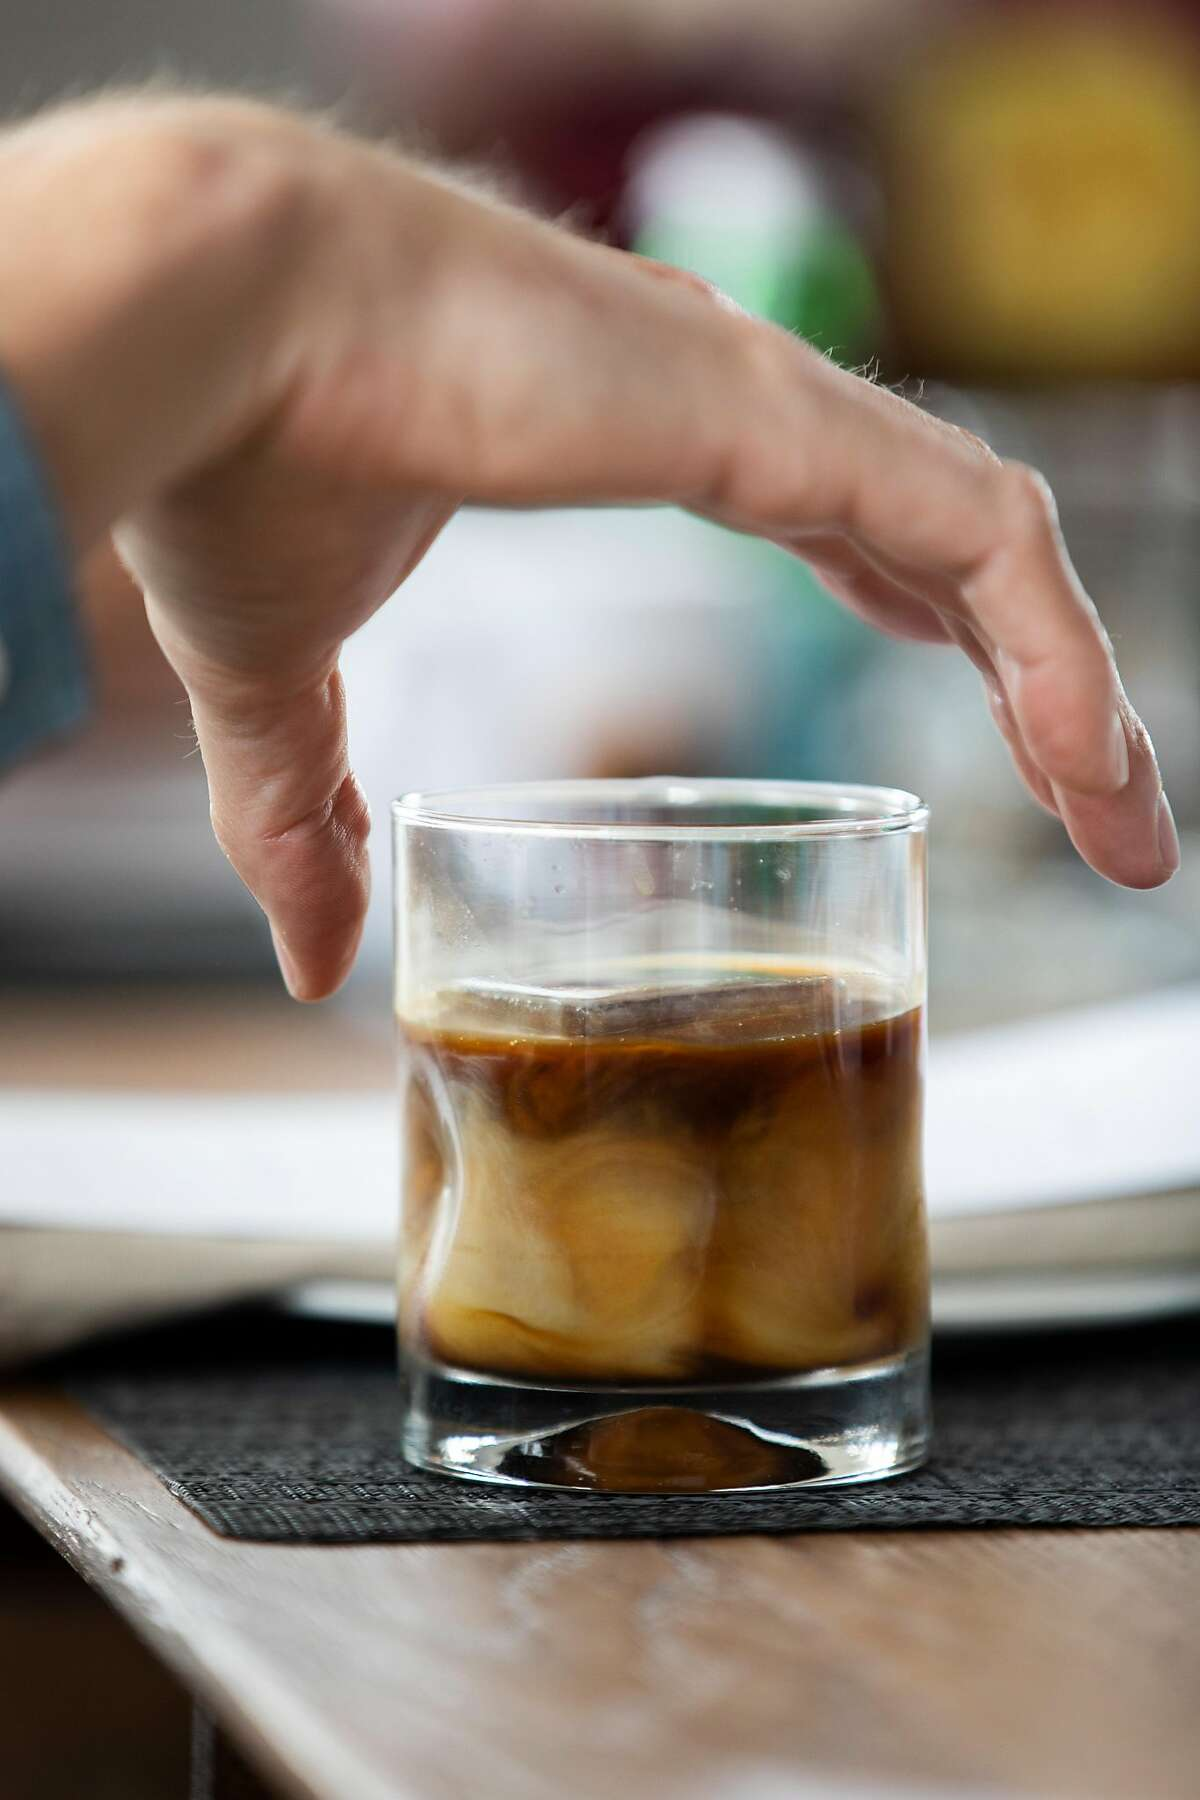 Hunter Pence adds milk to his Rise + Grind cold brew at home, Friday, May 14, 2021, in San Francisco, Calif. Hunter, a former baseball star with the San Francisco Giants, and his spouse Alexis Pence, a coffee entrepreneur, are opening a new coffee shop.